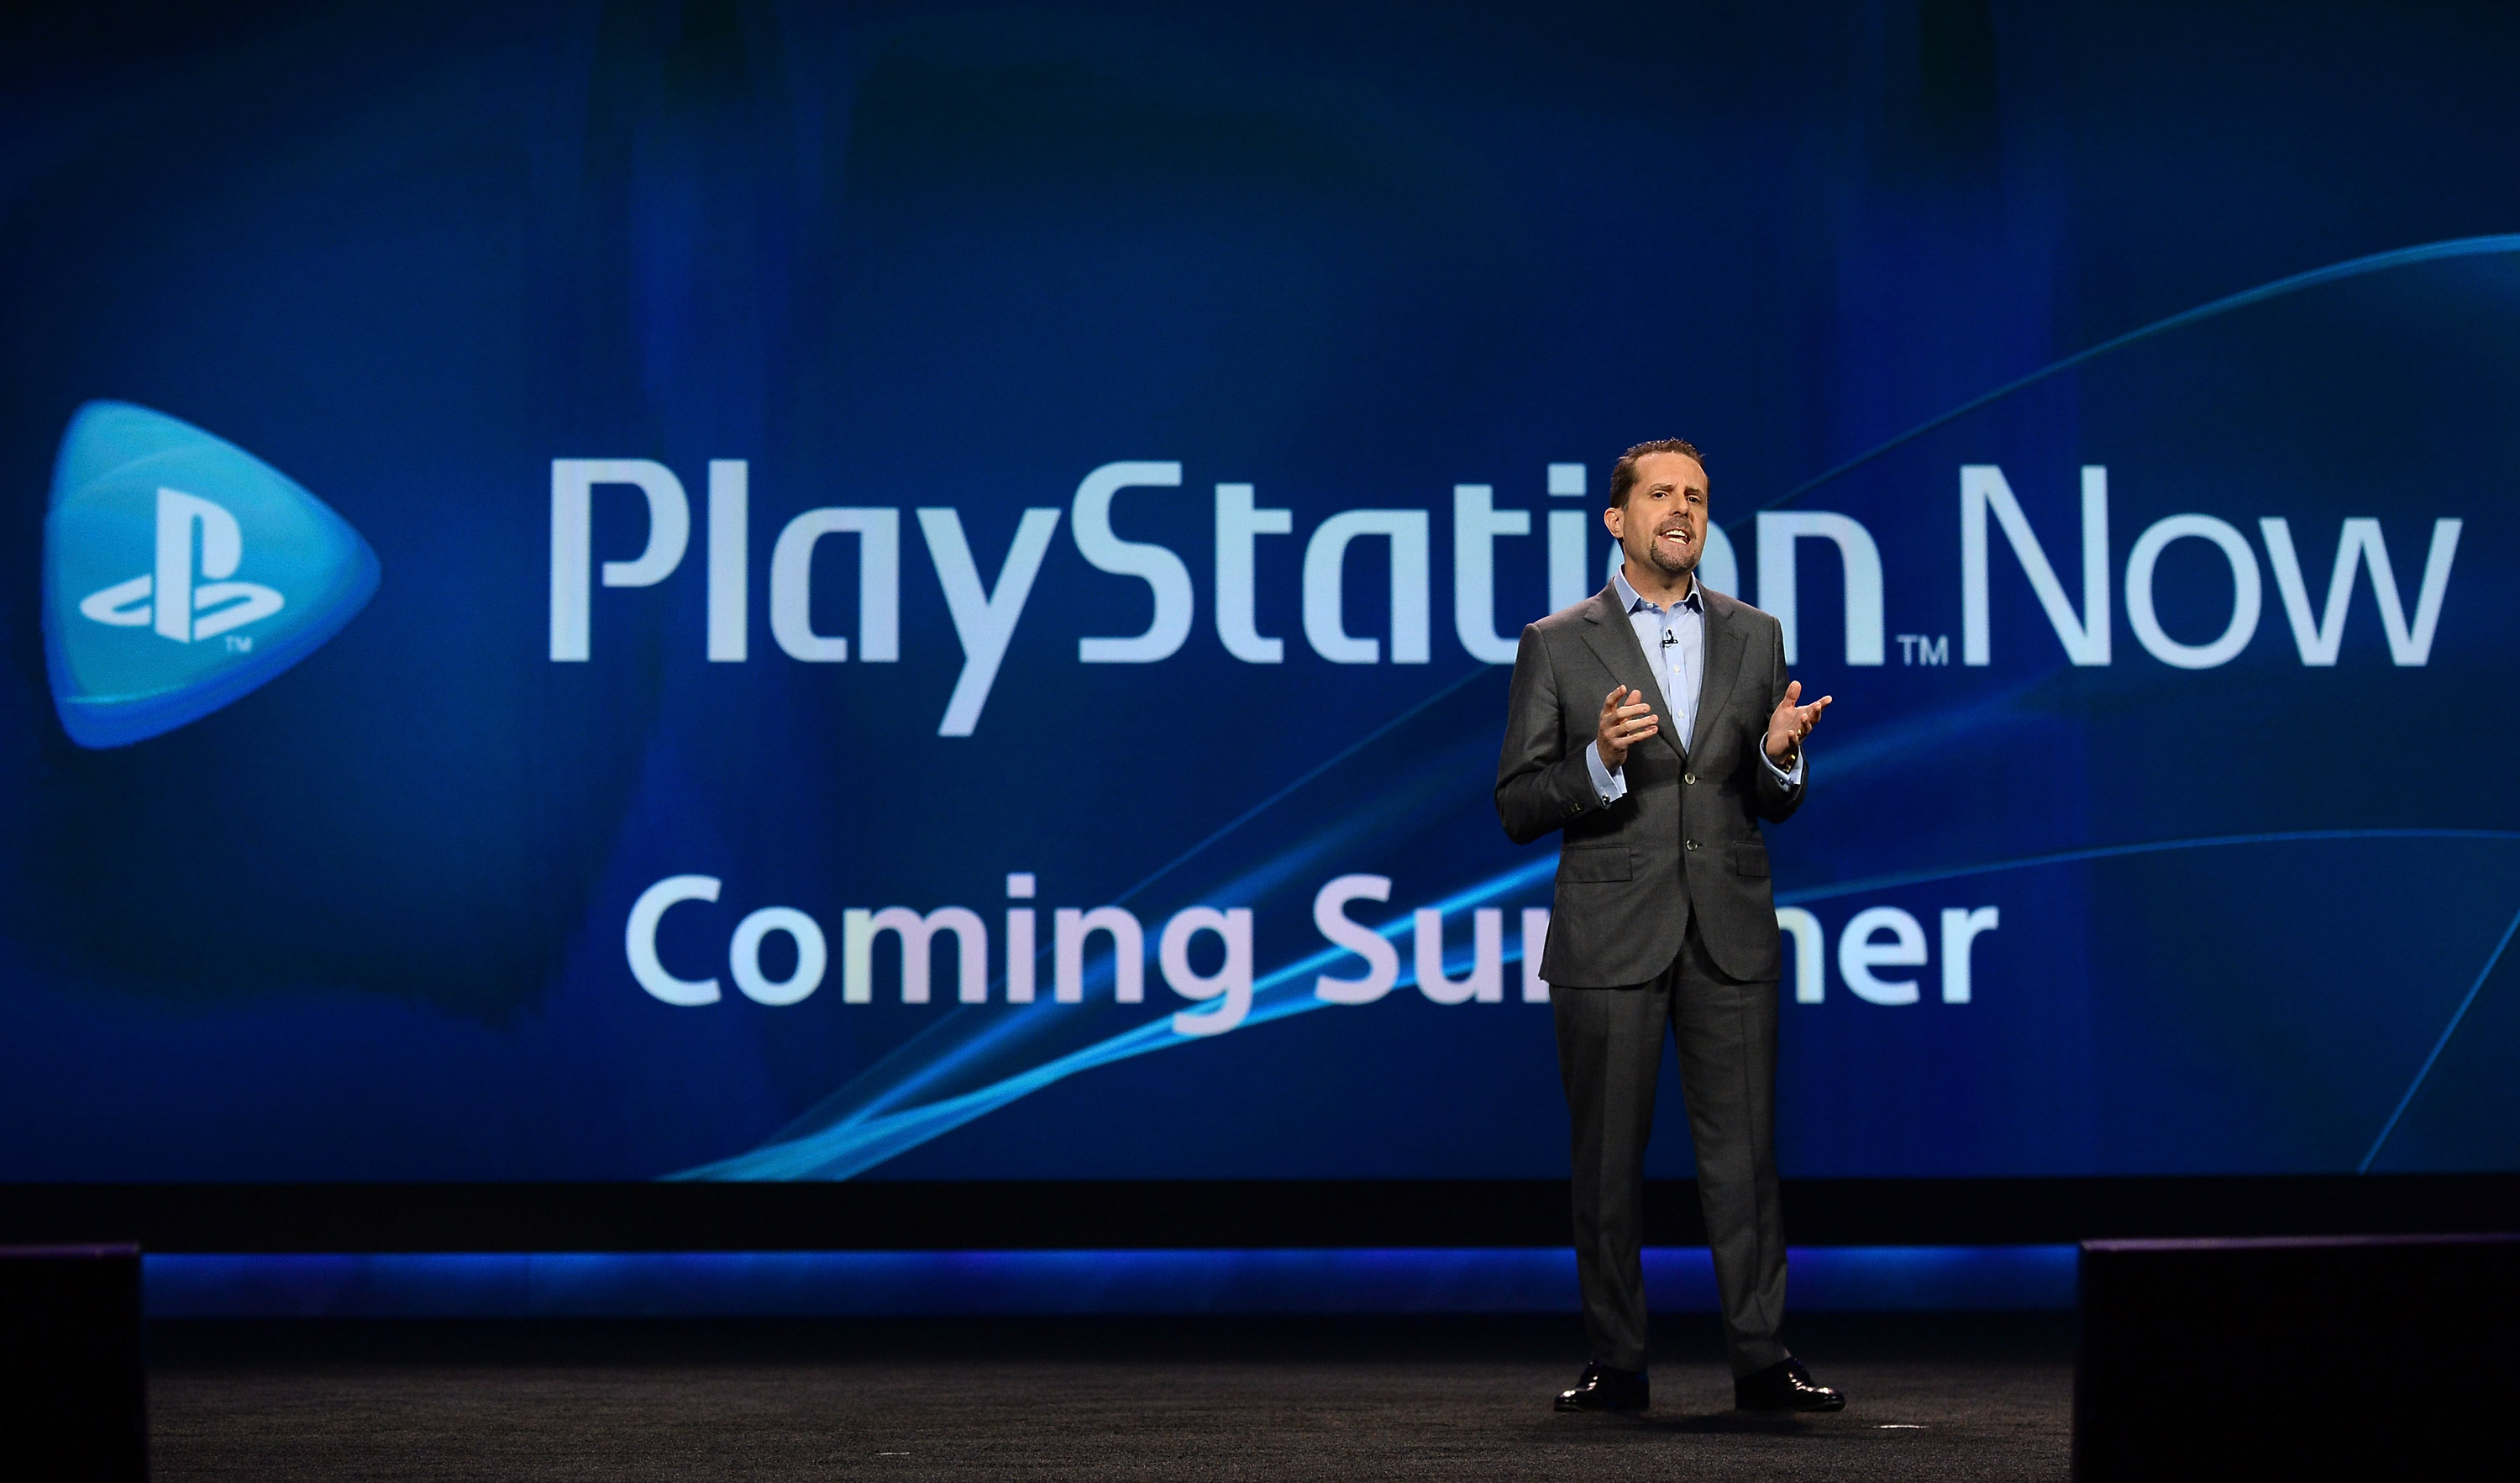 PlayStation Now Open Beta Hits PS4 in US on July 31